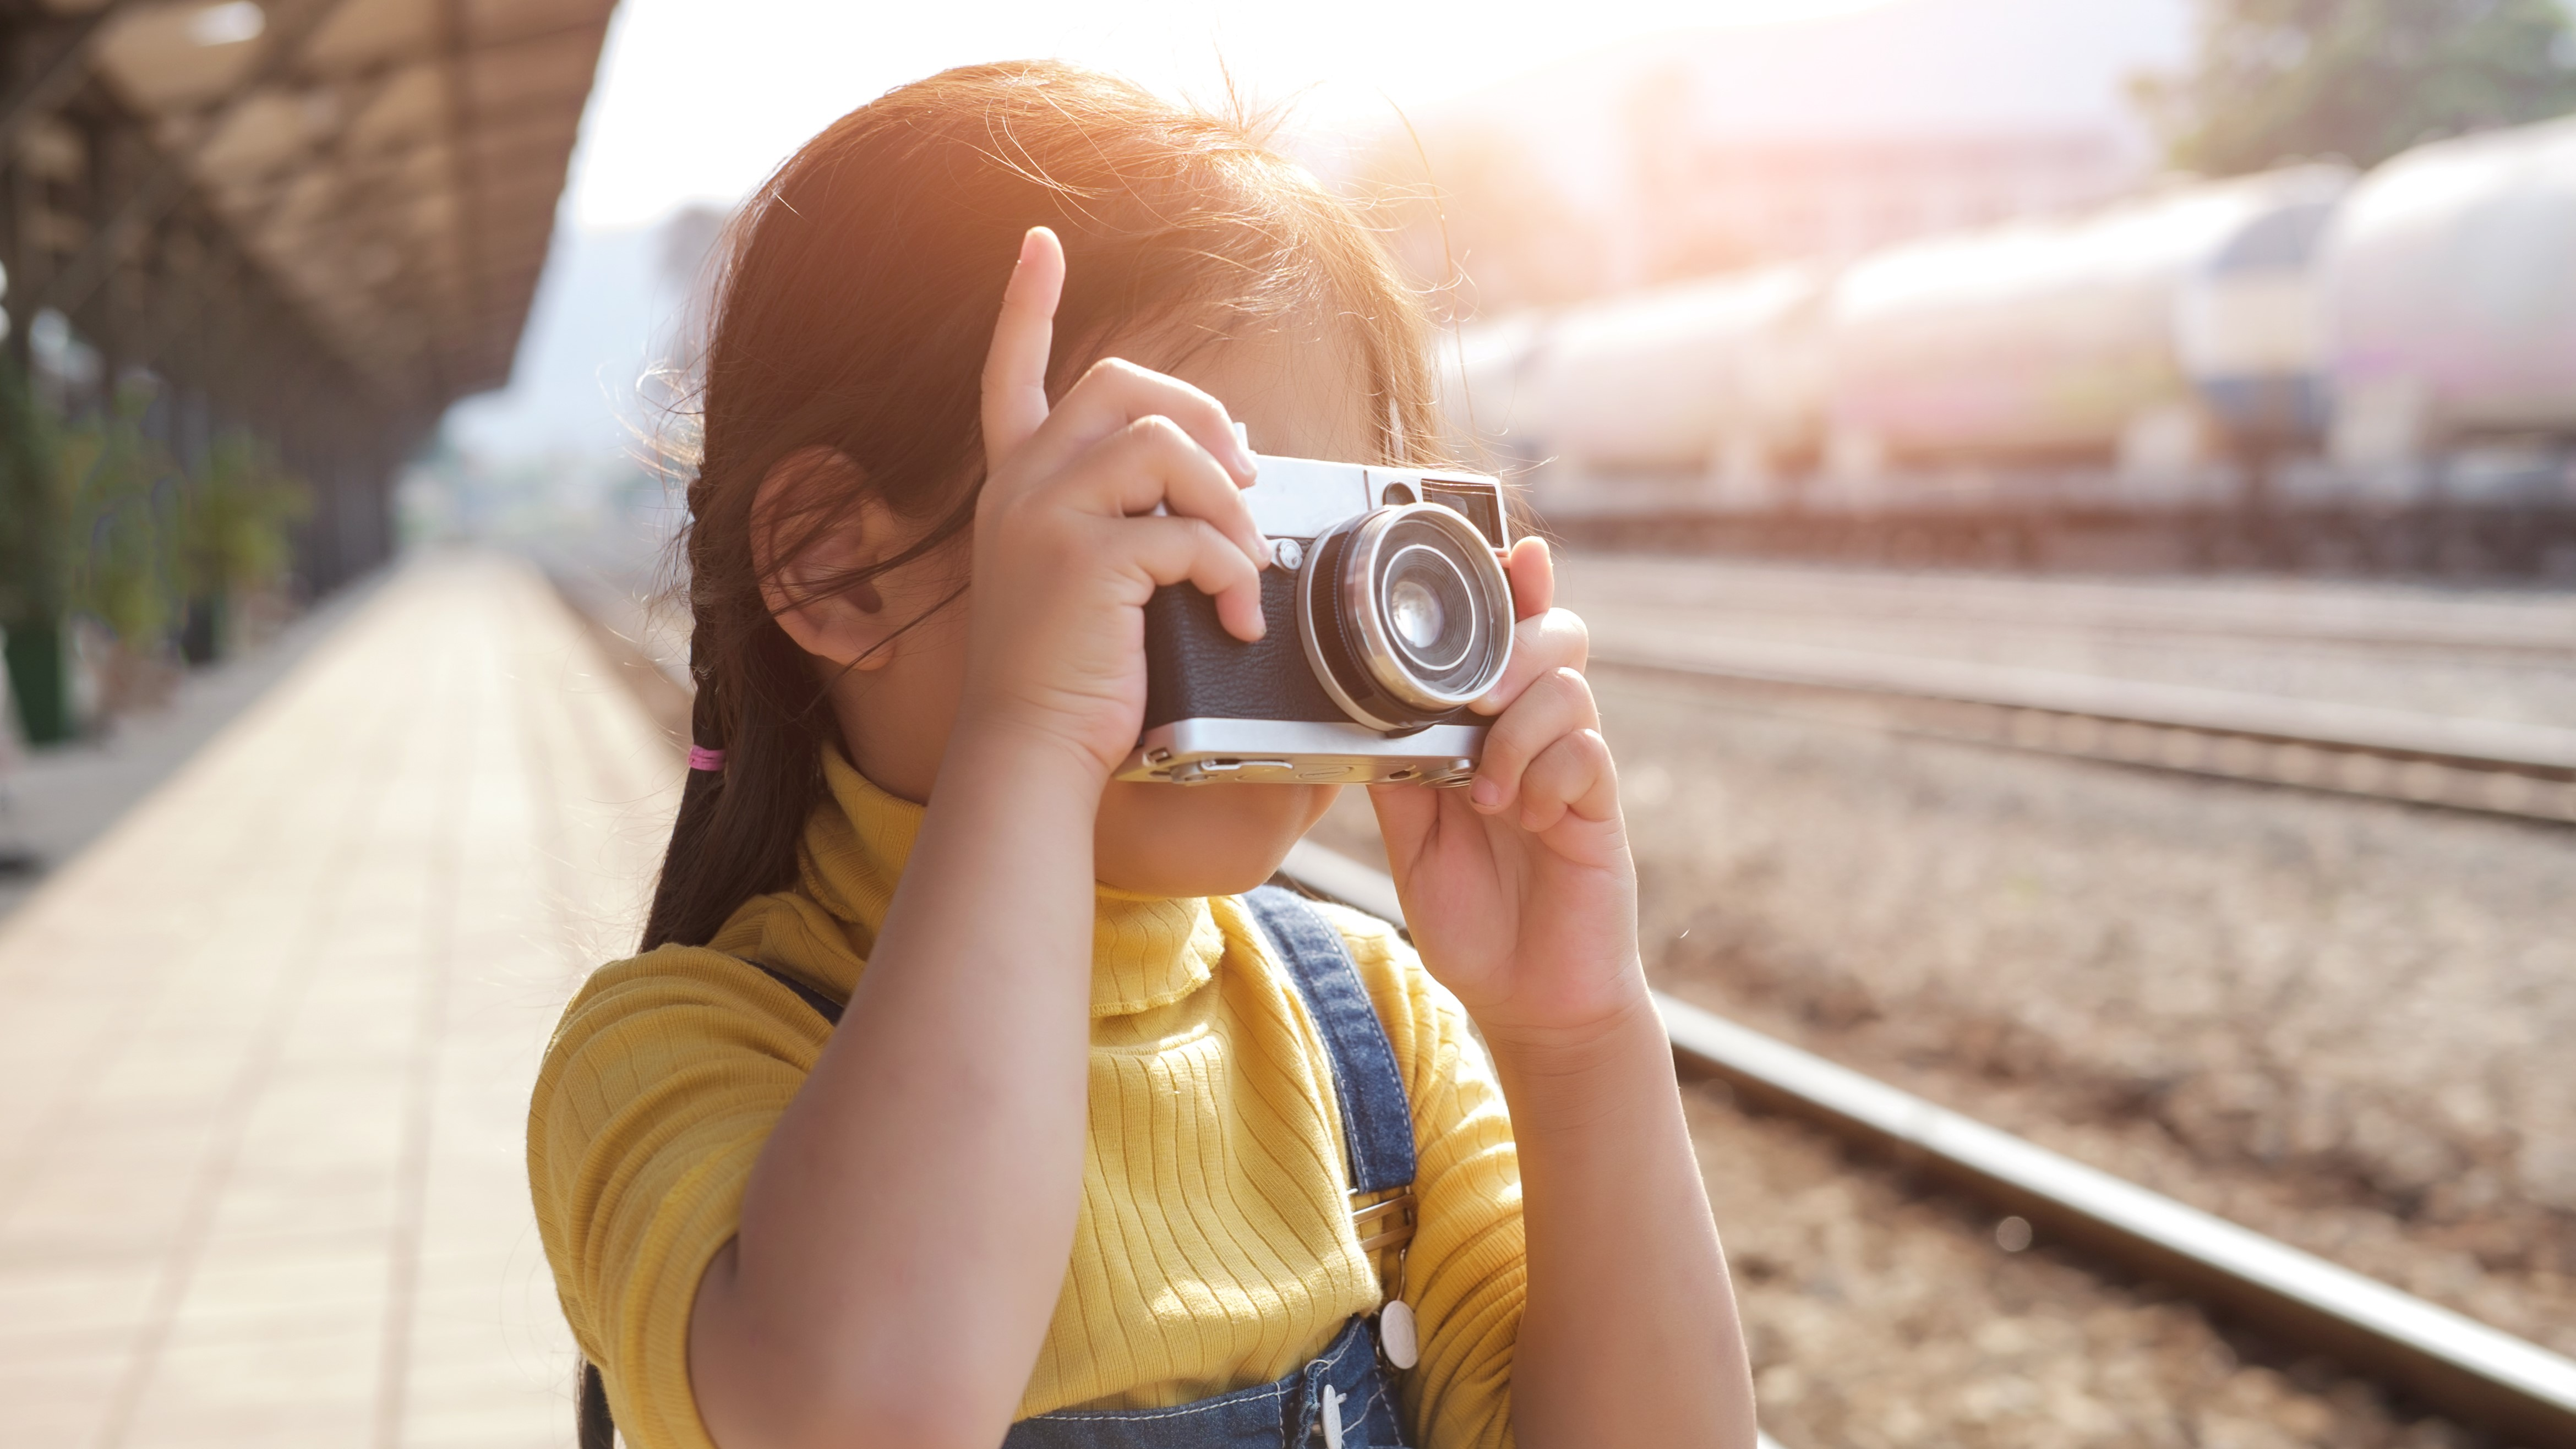 The best cameras for kids in 2019